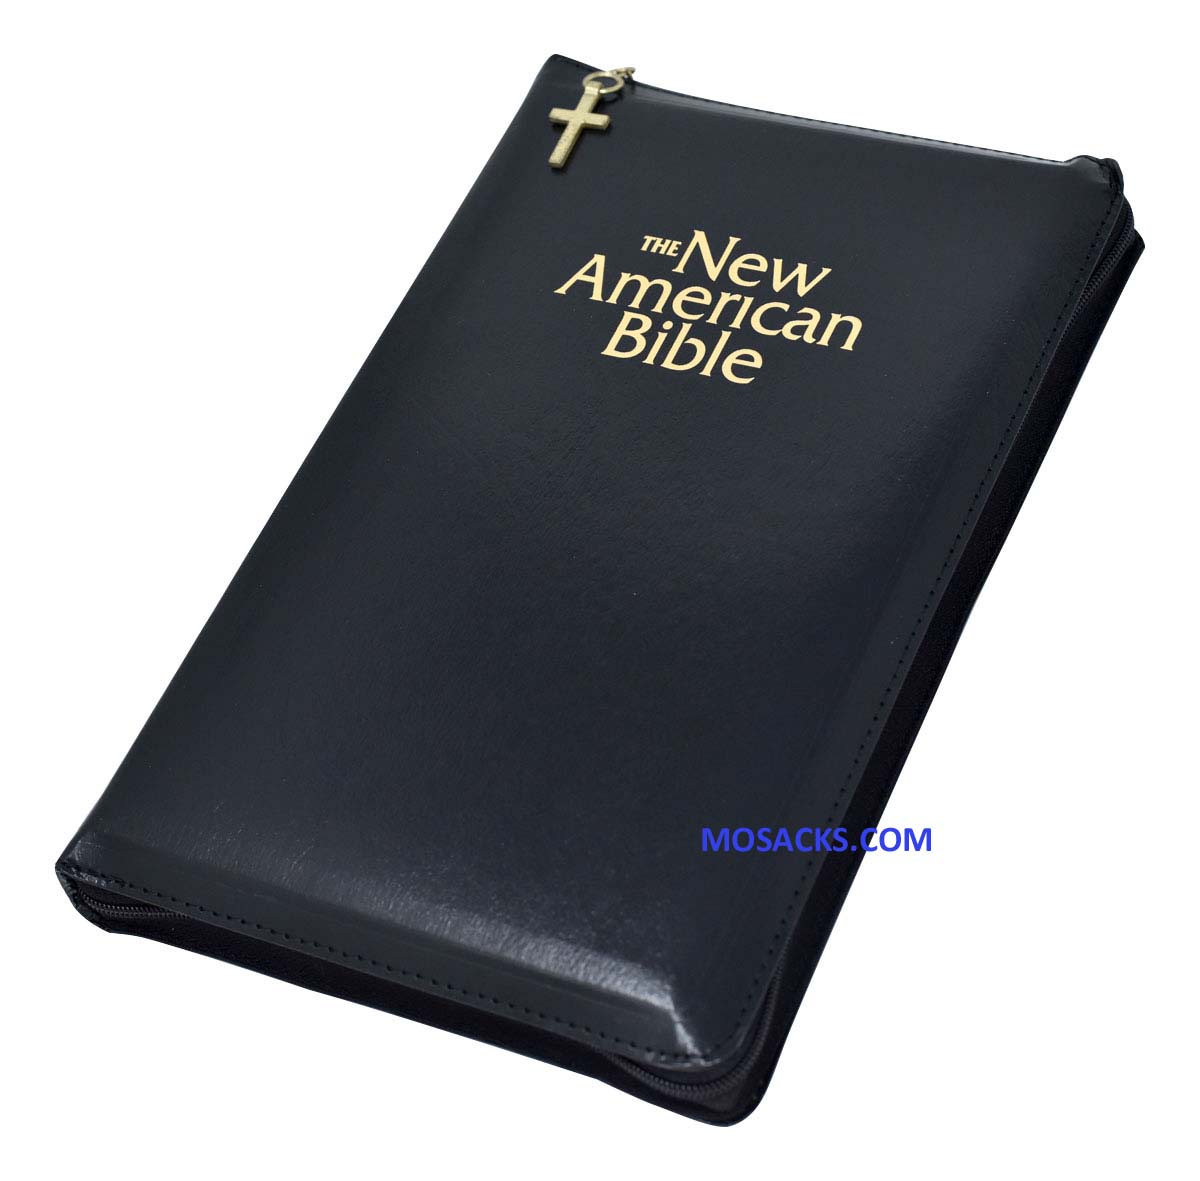 NABRE Deluxe Zipper Gift Bible W2405Z Black 9780529061898 from Catholic Book Publishing